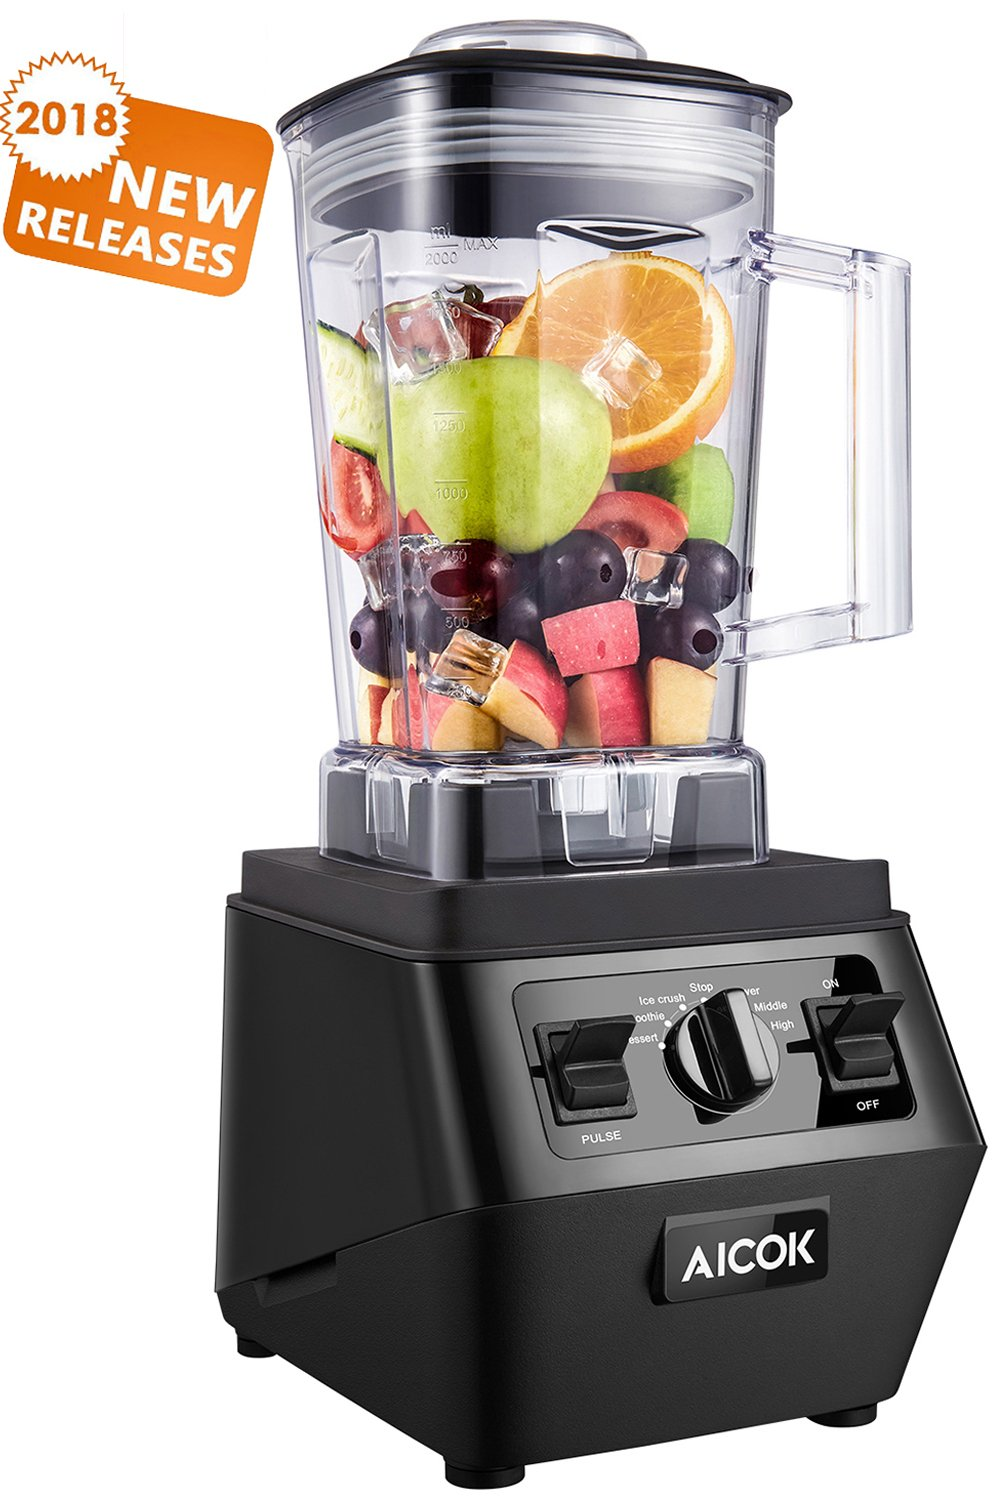 Aicok Blender 1400W Professional High Speed Mixer 30,000RPM, with 70oz BPA-Free Tritan Pitcher, Variable Speed Controls, Commercial Blender with Stainless Steel 6 Pro Blades for Ice Crushing, Black